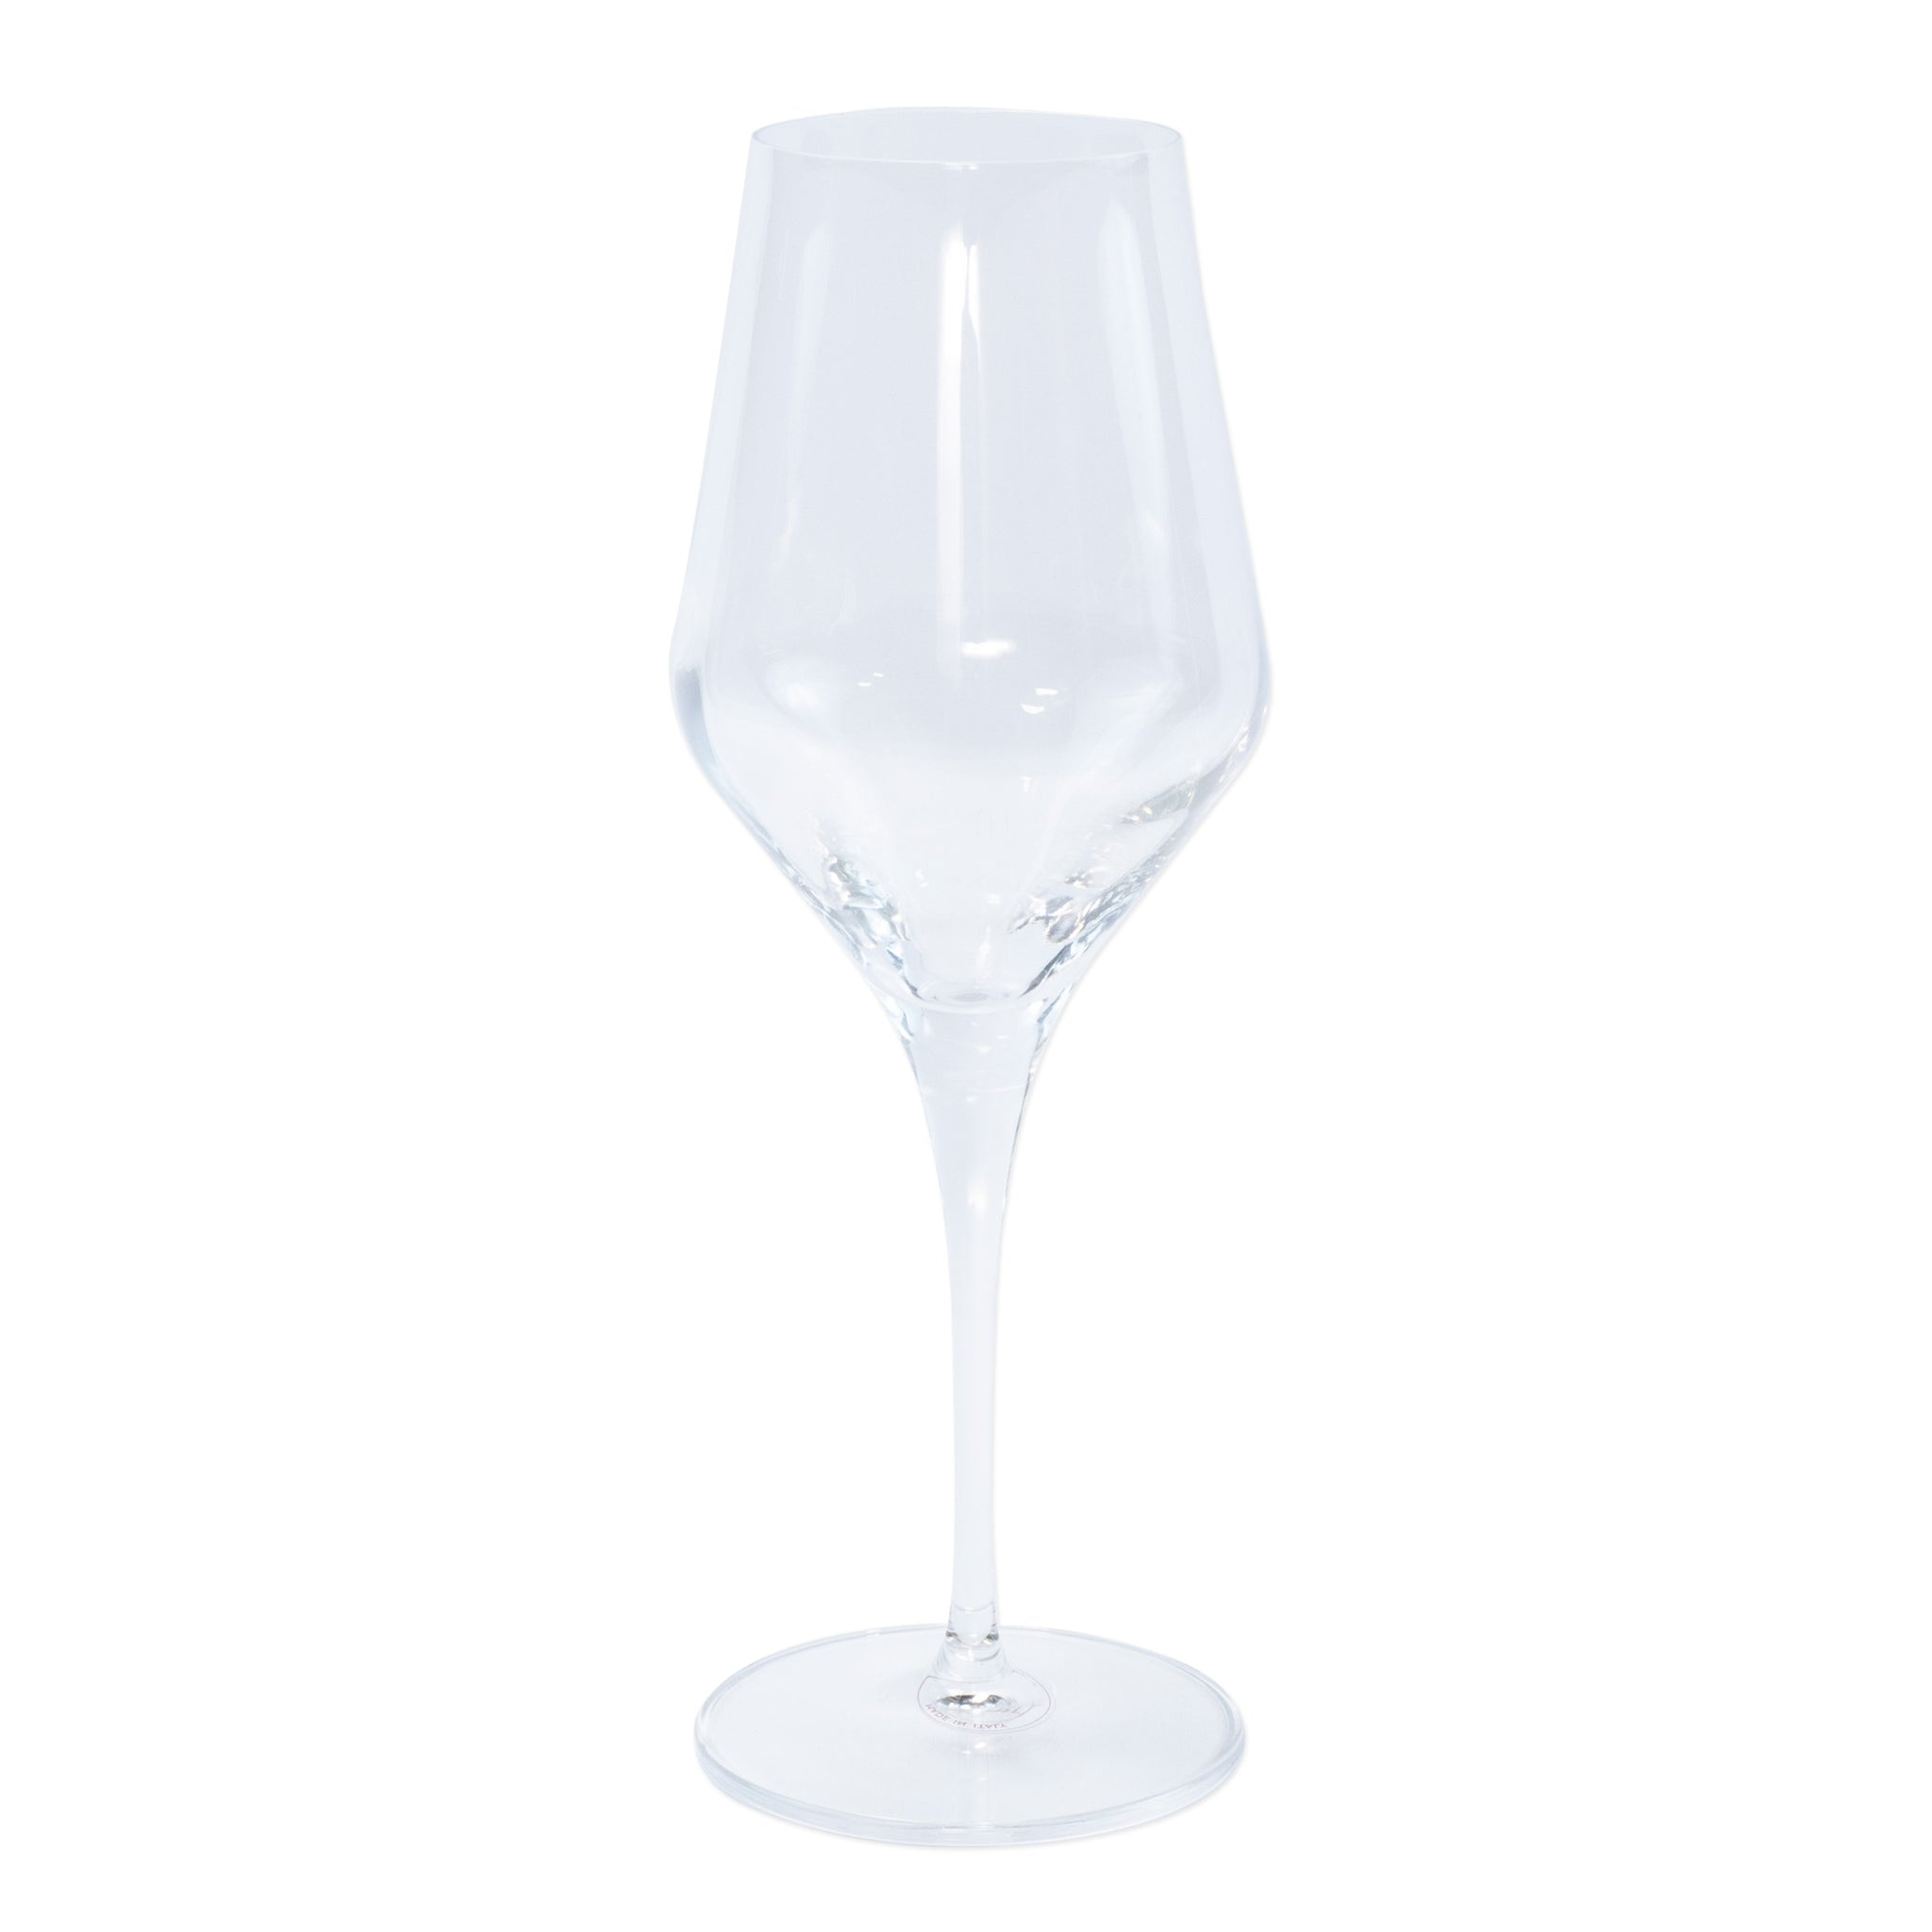 Contessa Water Glass - Sets of 4 - Clear